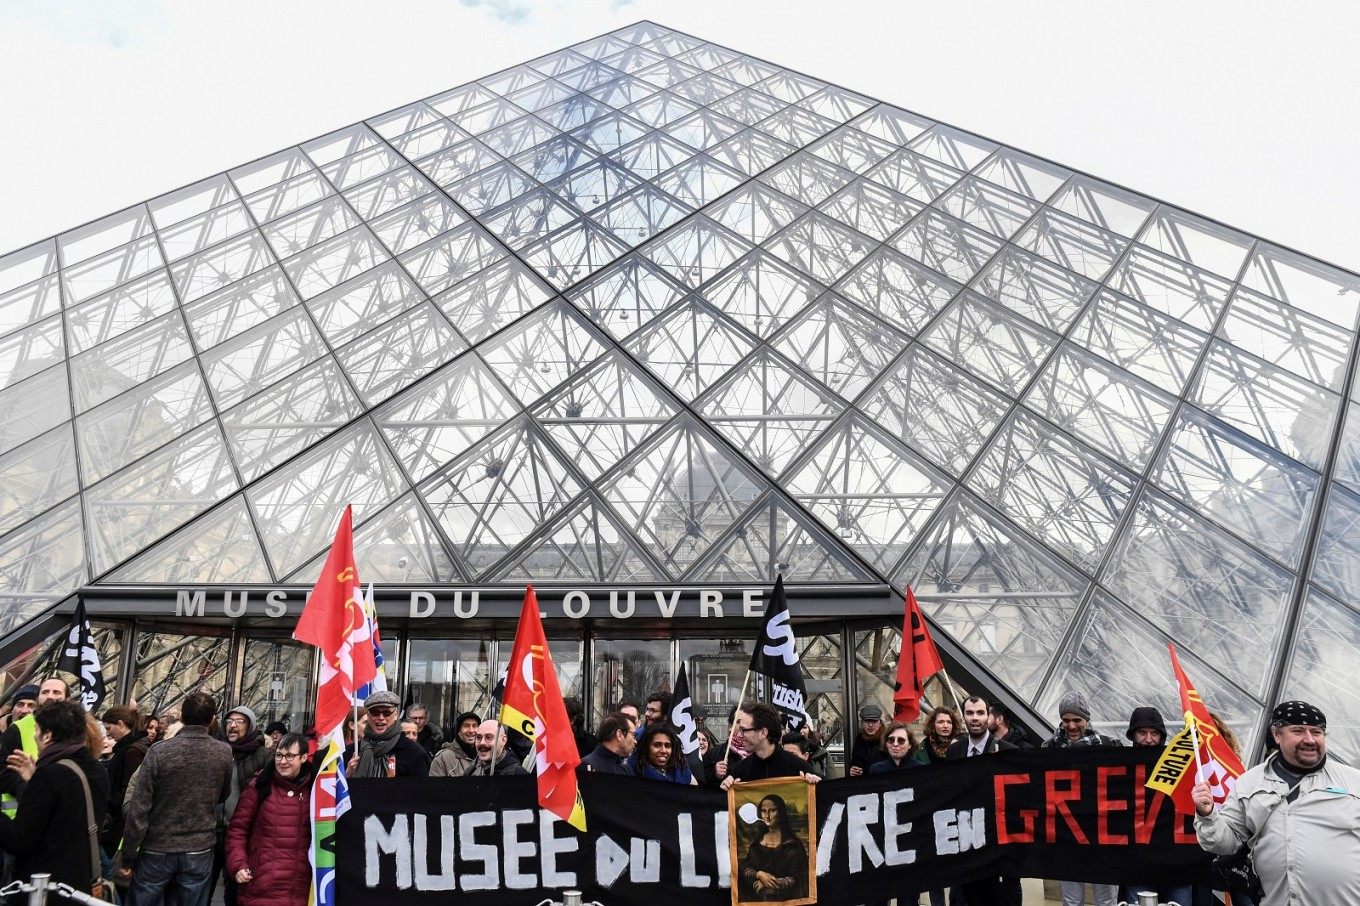 Louvre reopens after being blocked by strikers